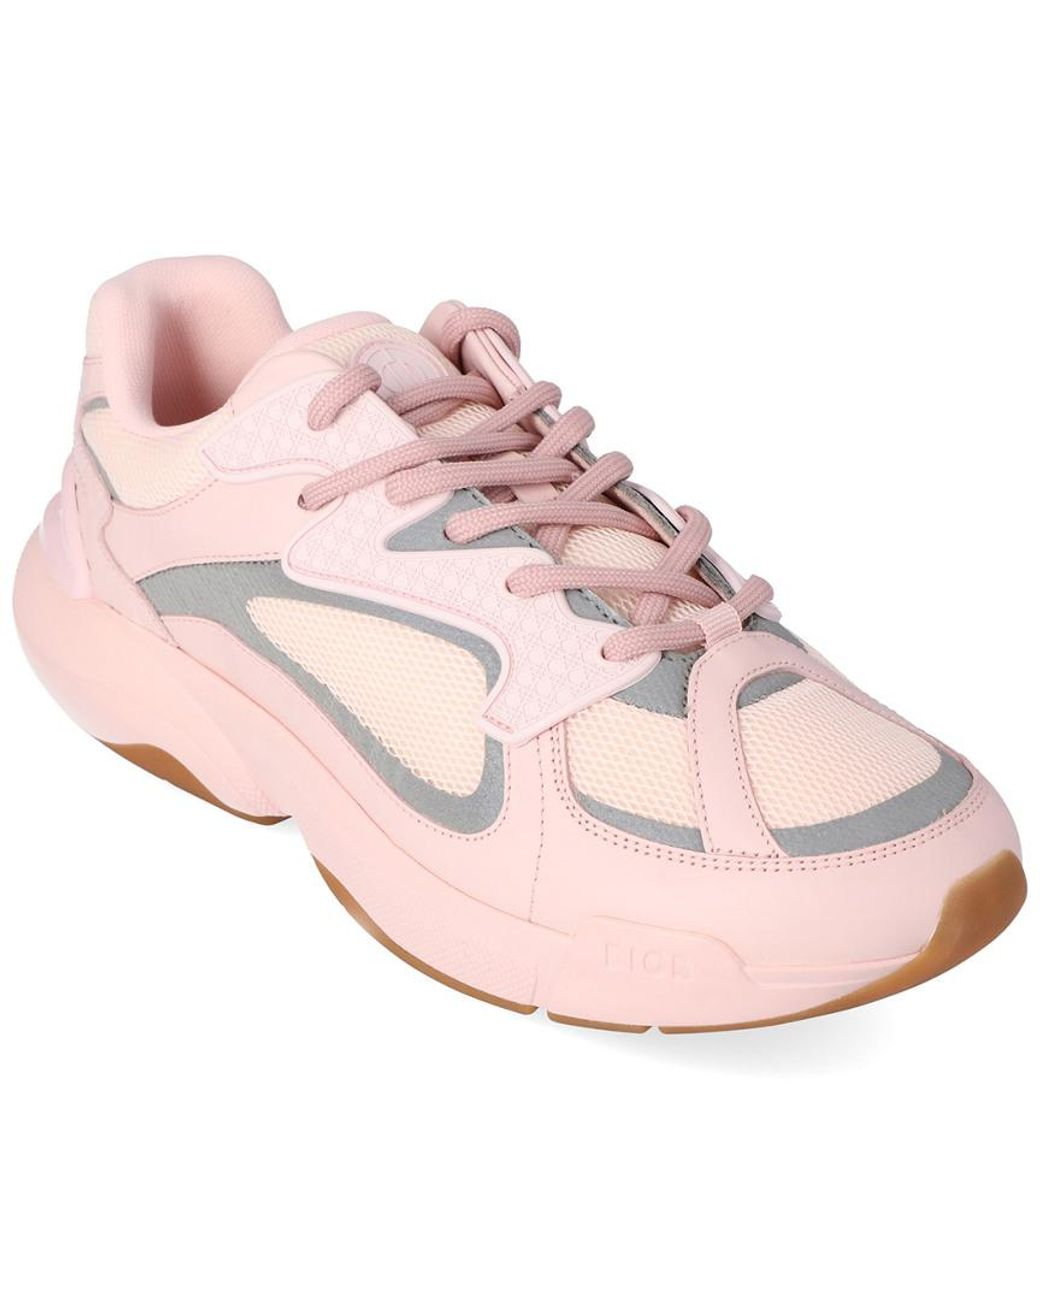 Dior Canvas B24 Sneaker in Pink - Lyst